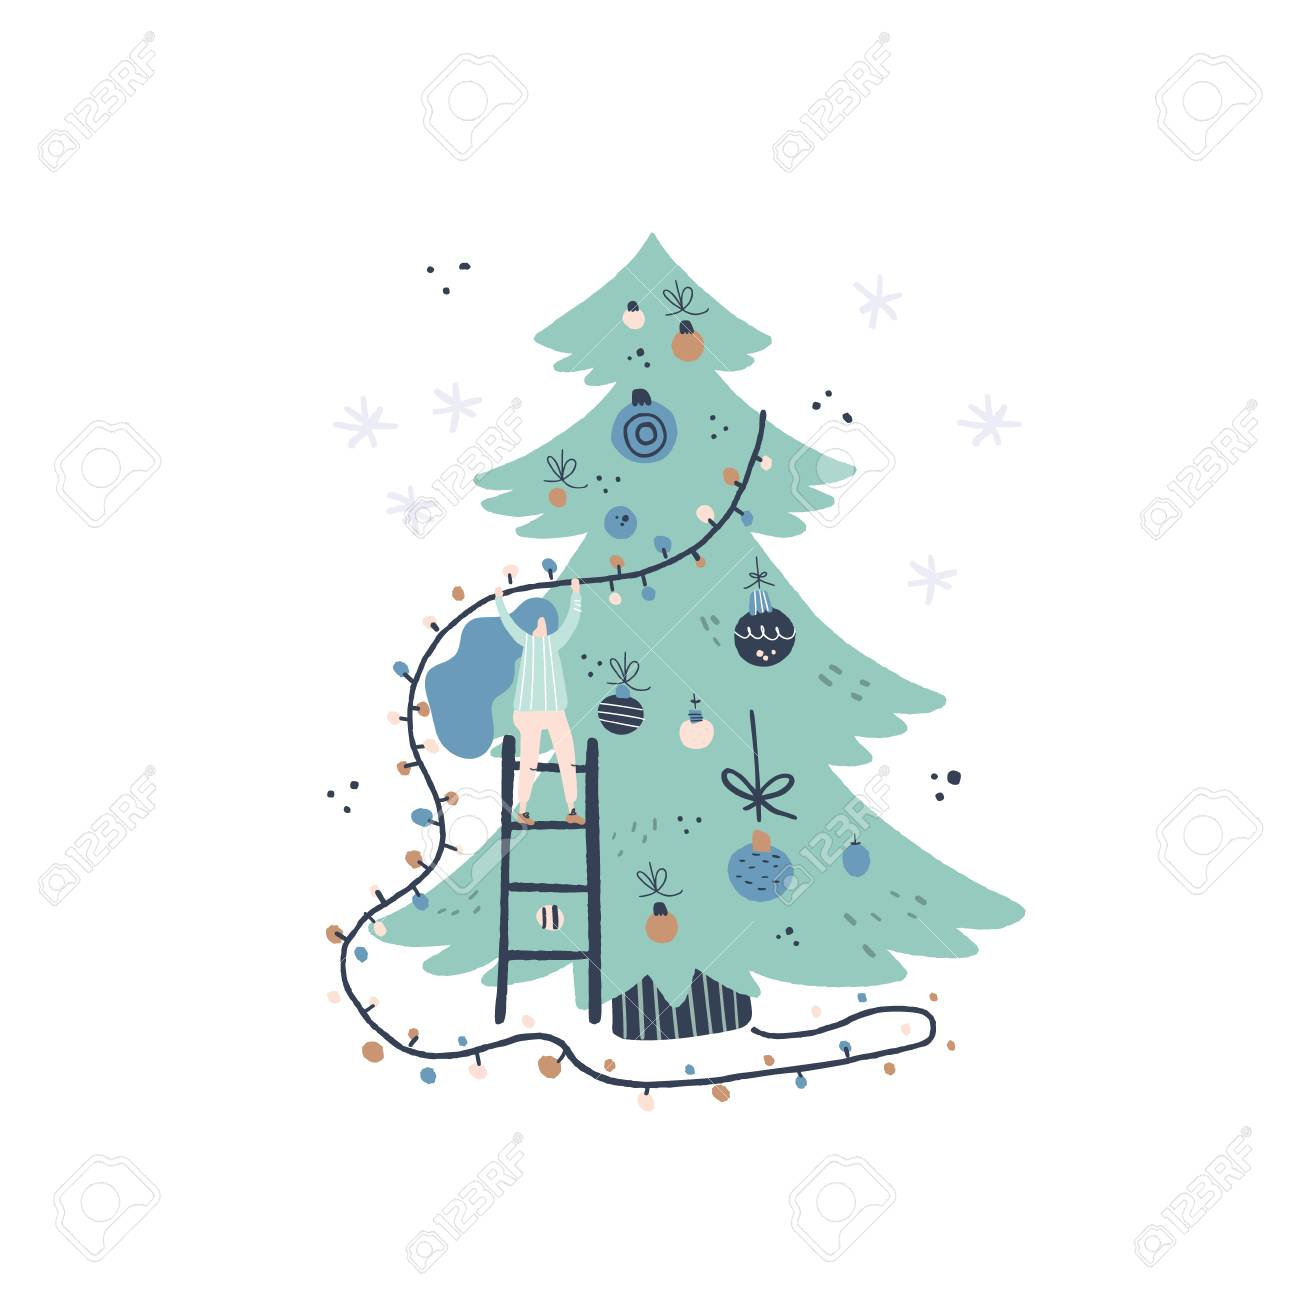 Flat style vector illustration of Christmas concept. Girl and Christmas tree. Xmas or new year card design. - 111516324